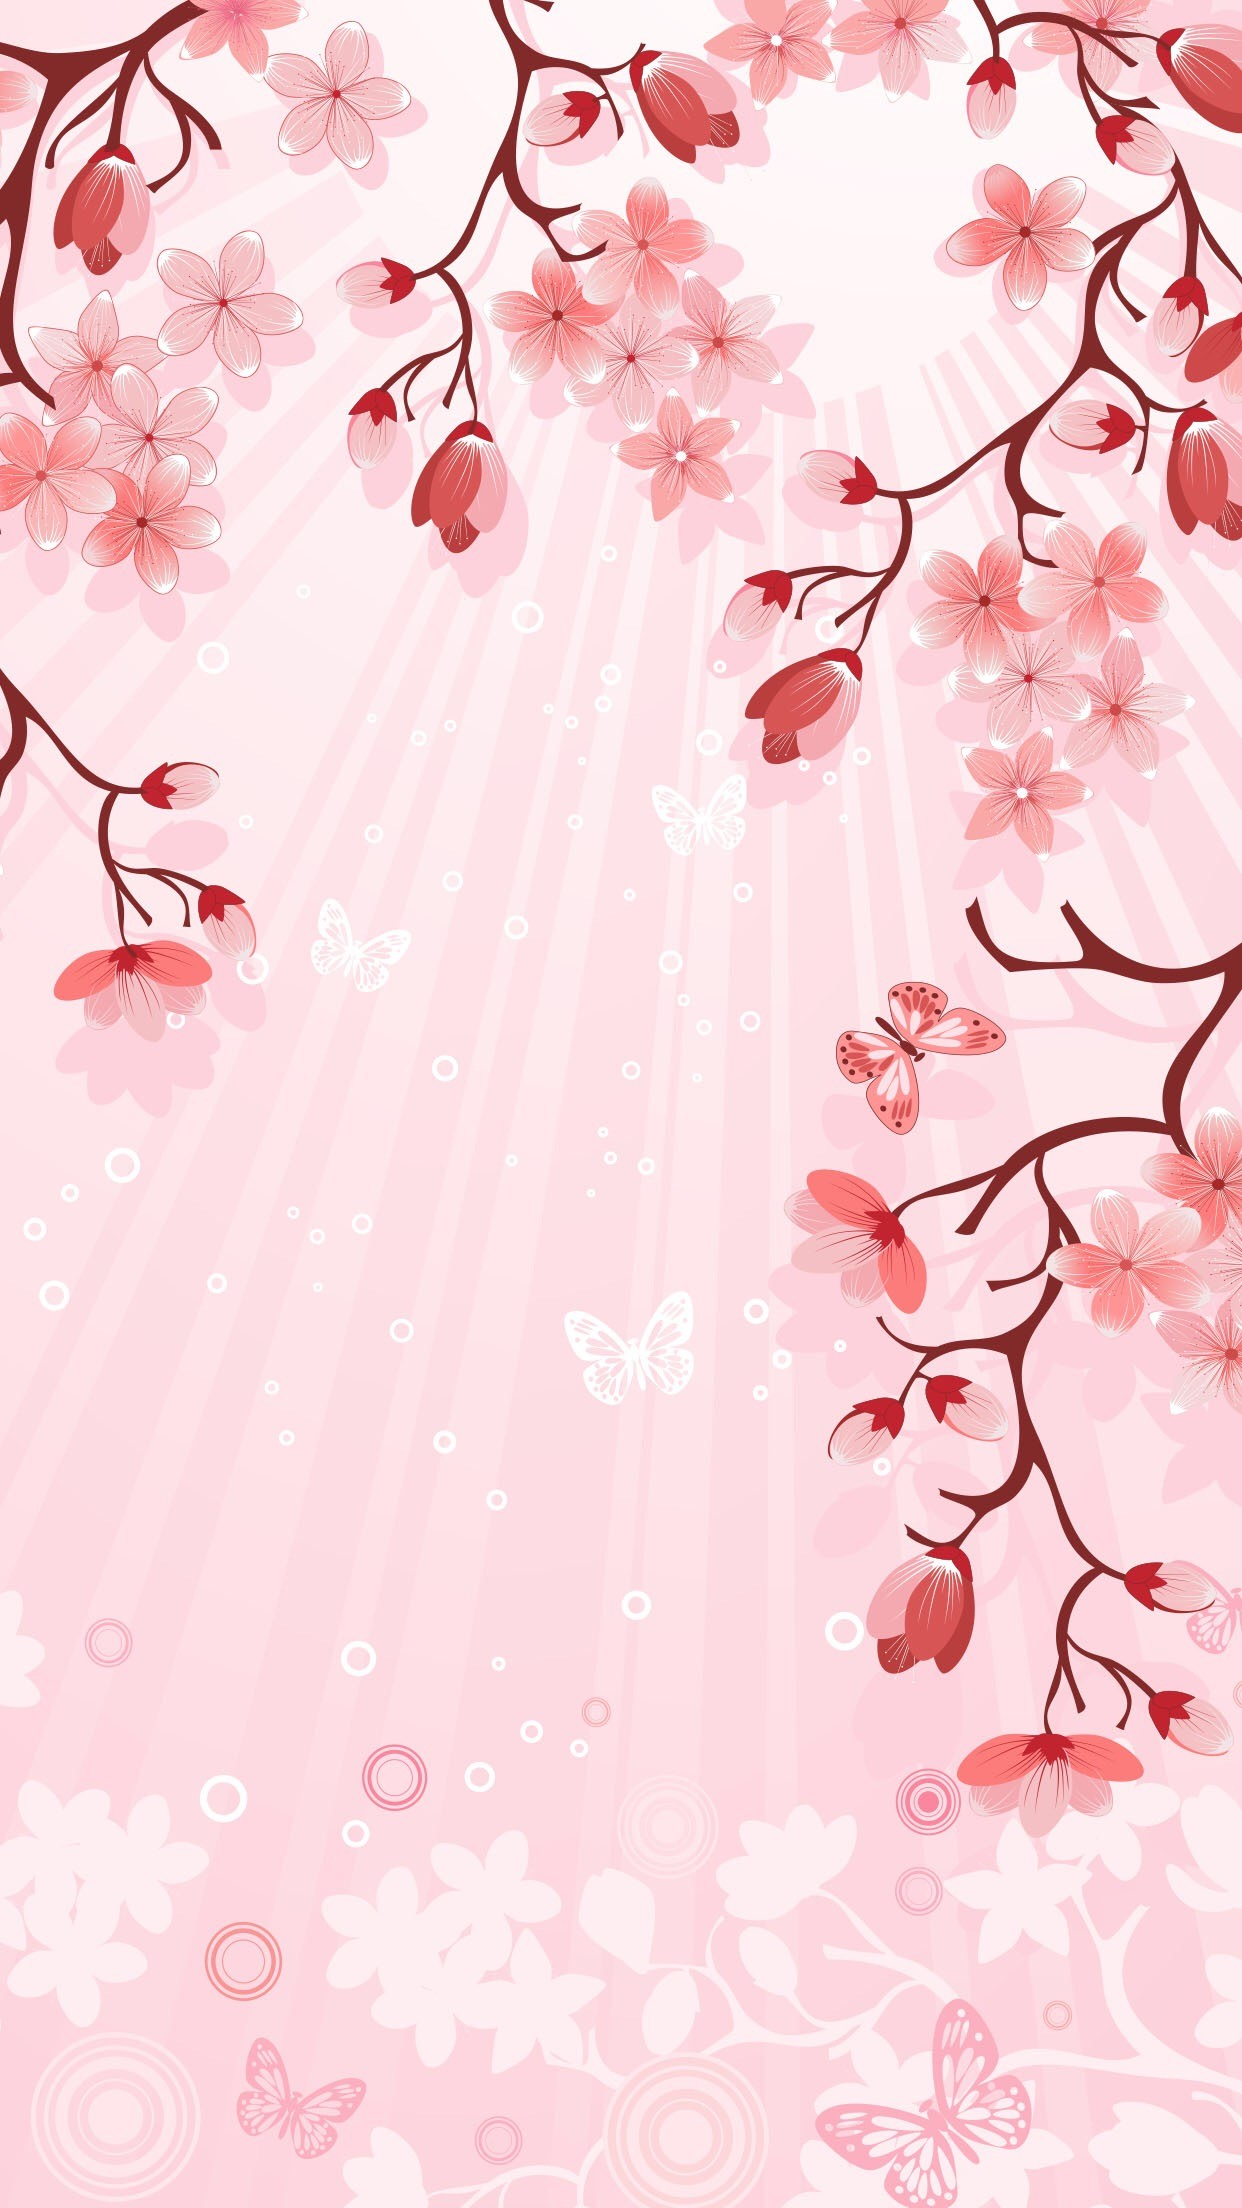 Cute Girly Wallpapers for iPhone (72+ images)  |Girly Iphone Wallpapers